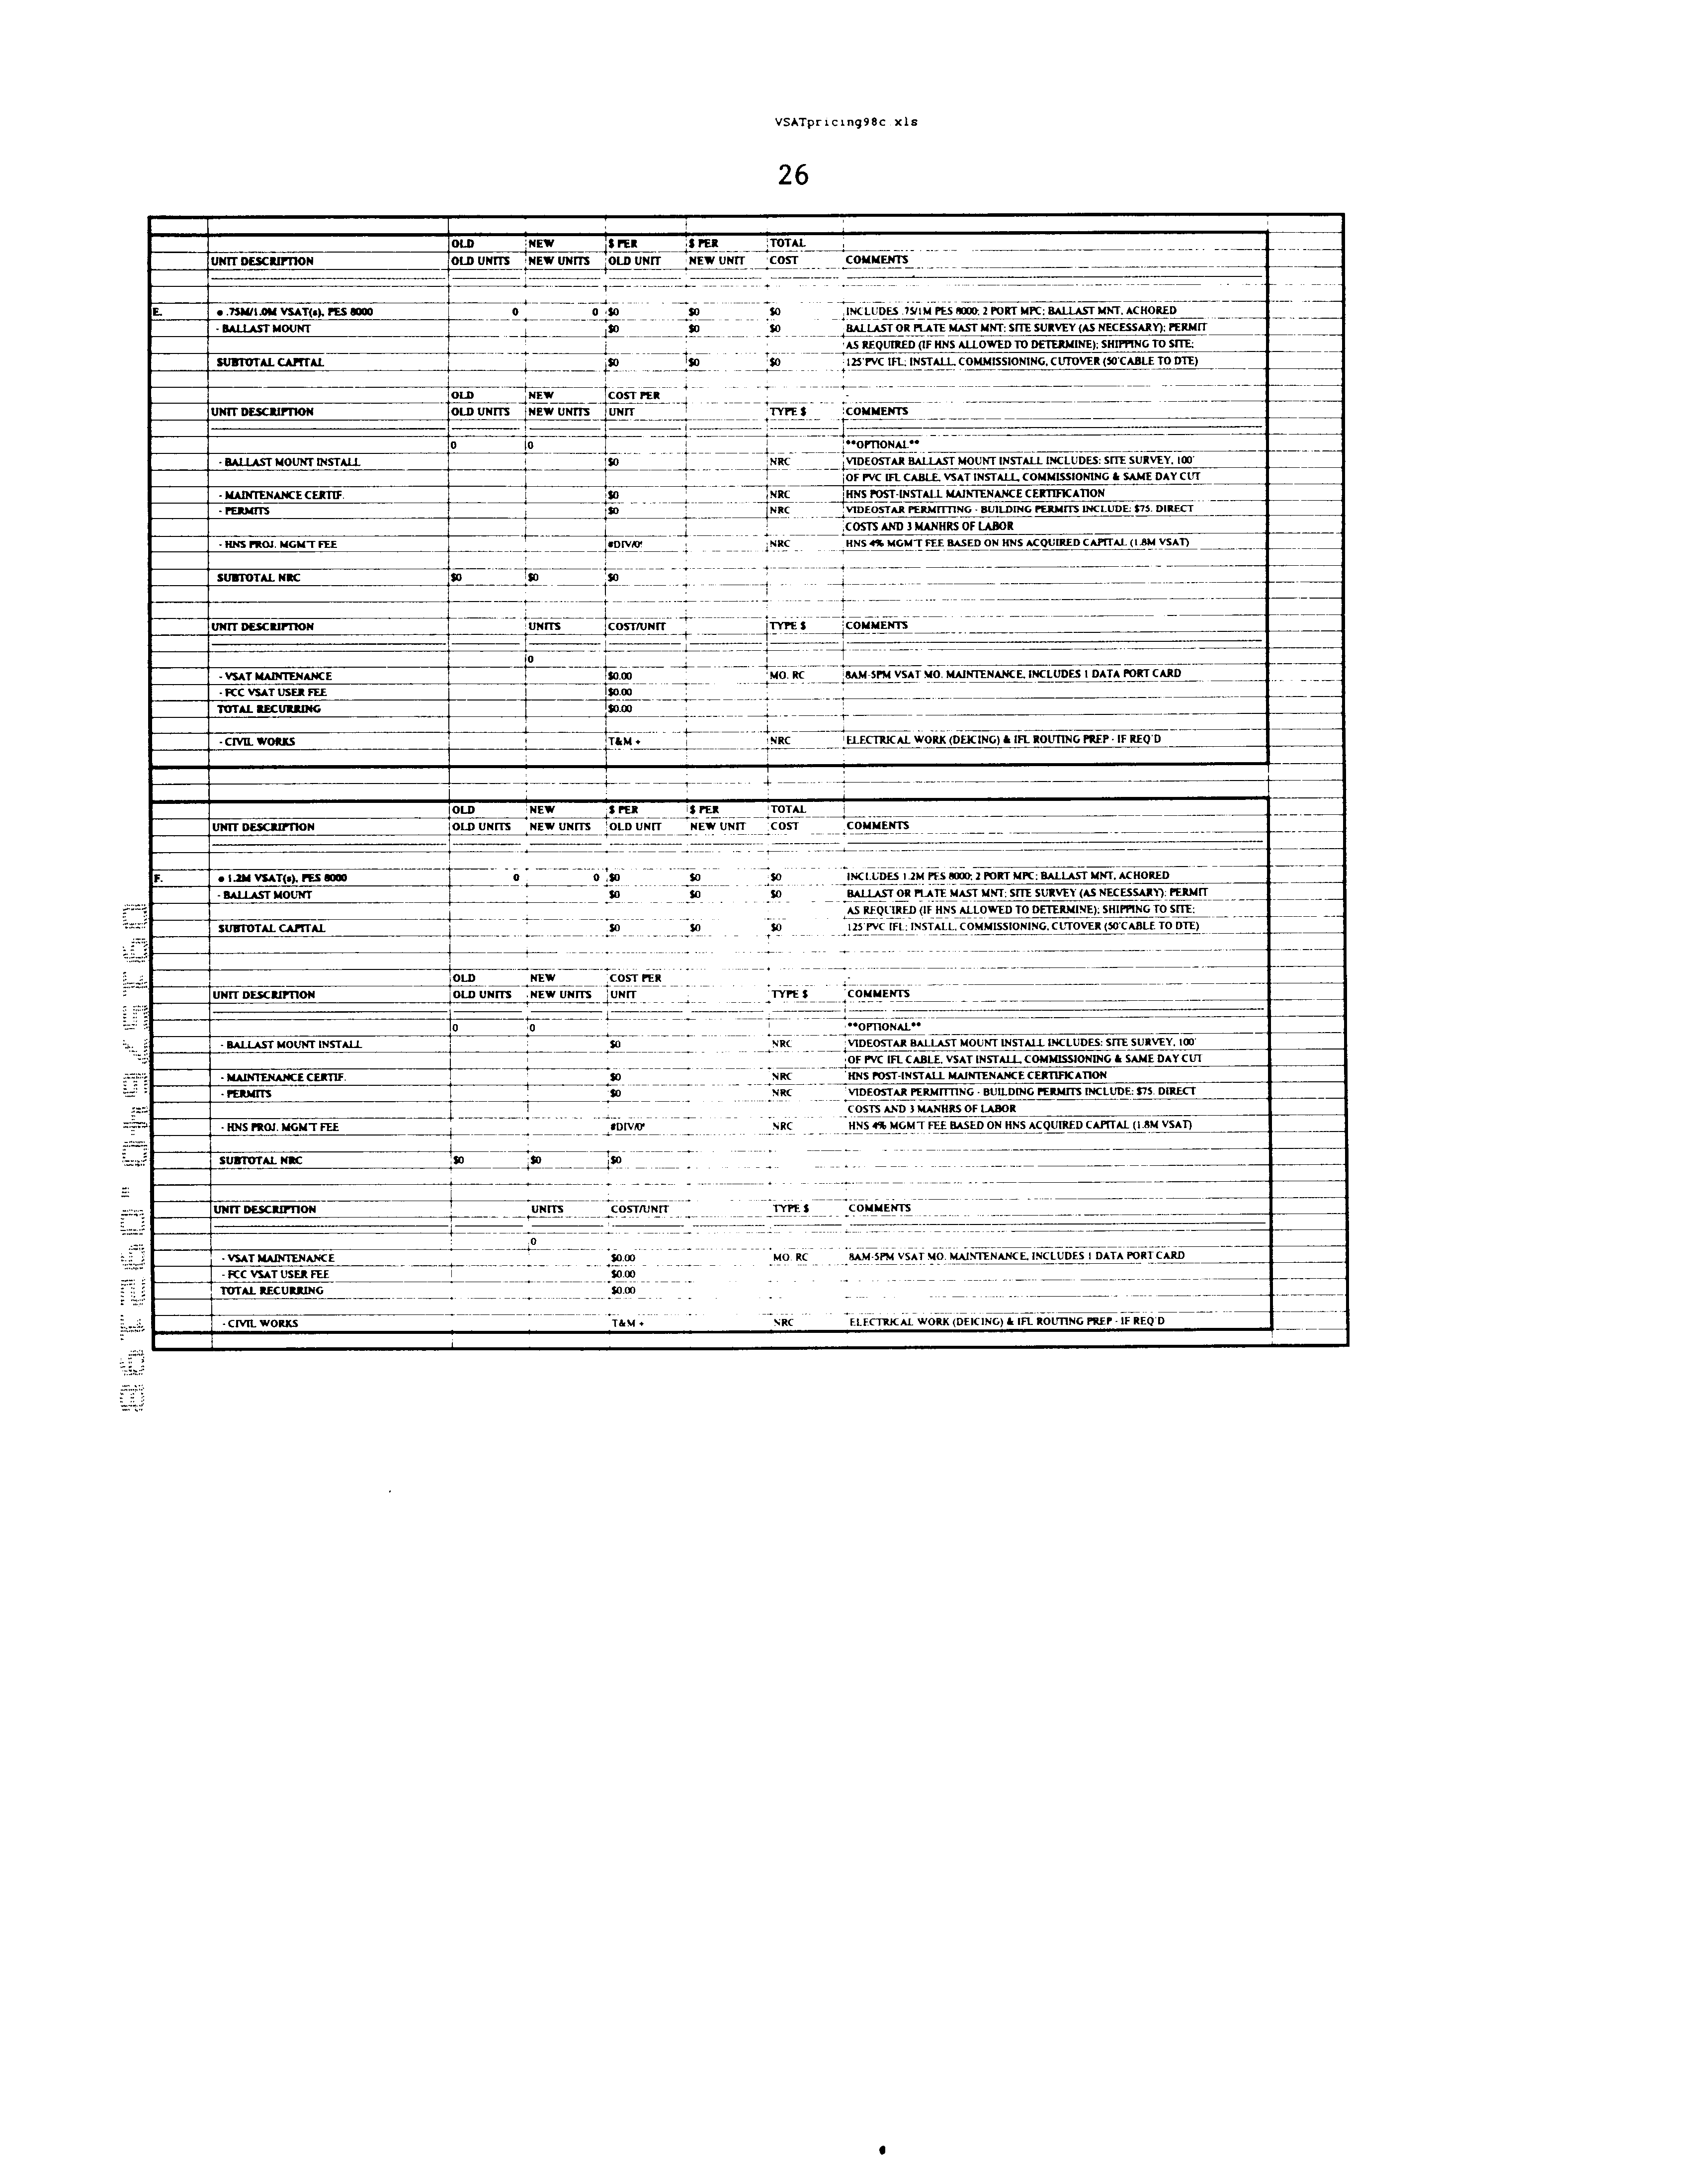 Quot Type These Function Similar As Above Except Instead Of A Ballast